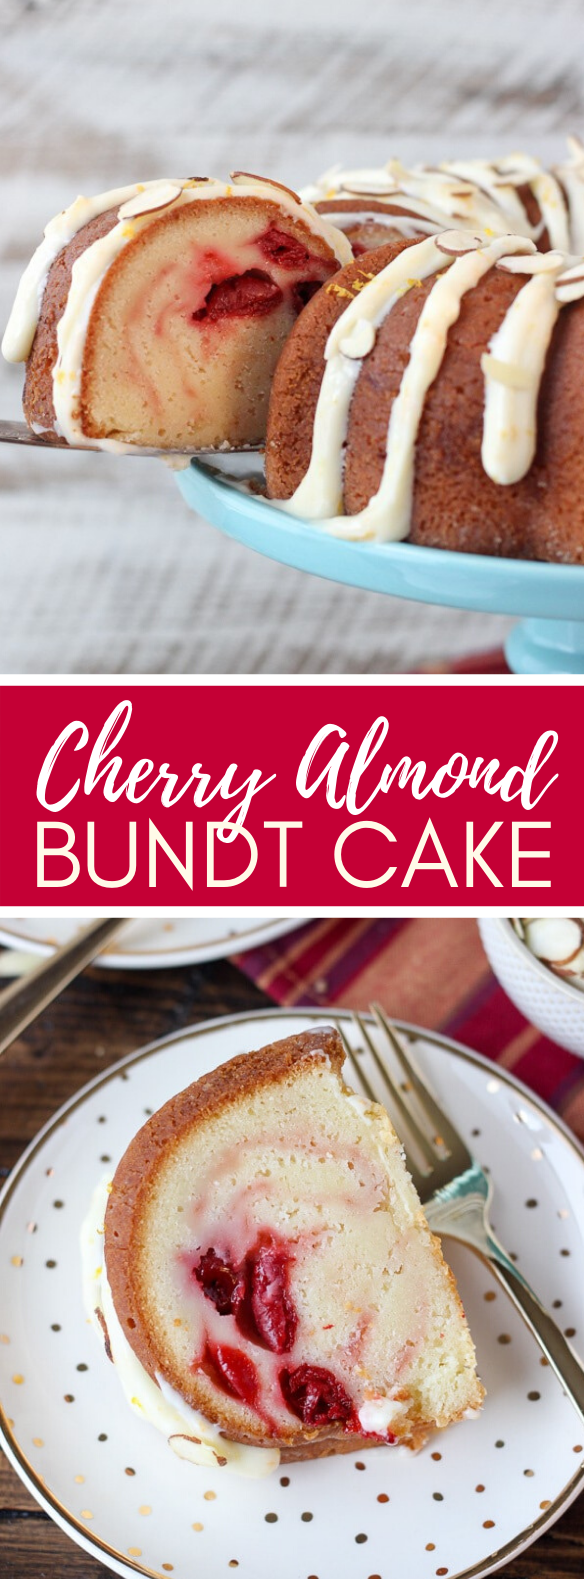 Cherry Almond Bundt Cake #desserts #traditionalrecipe